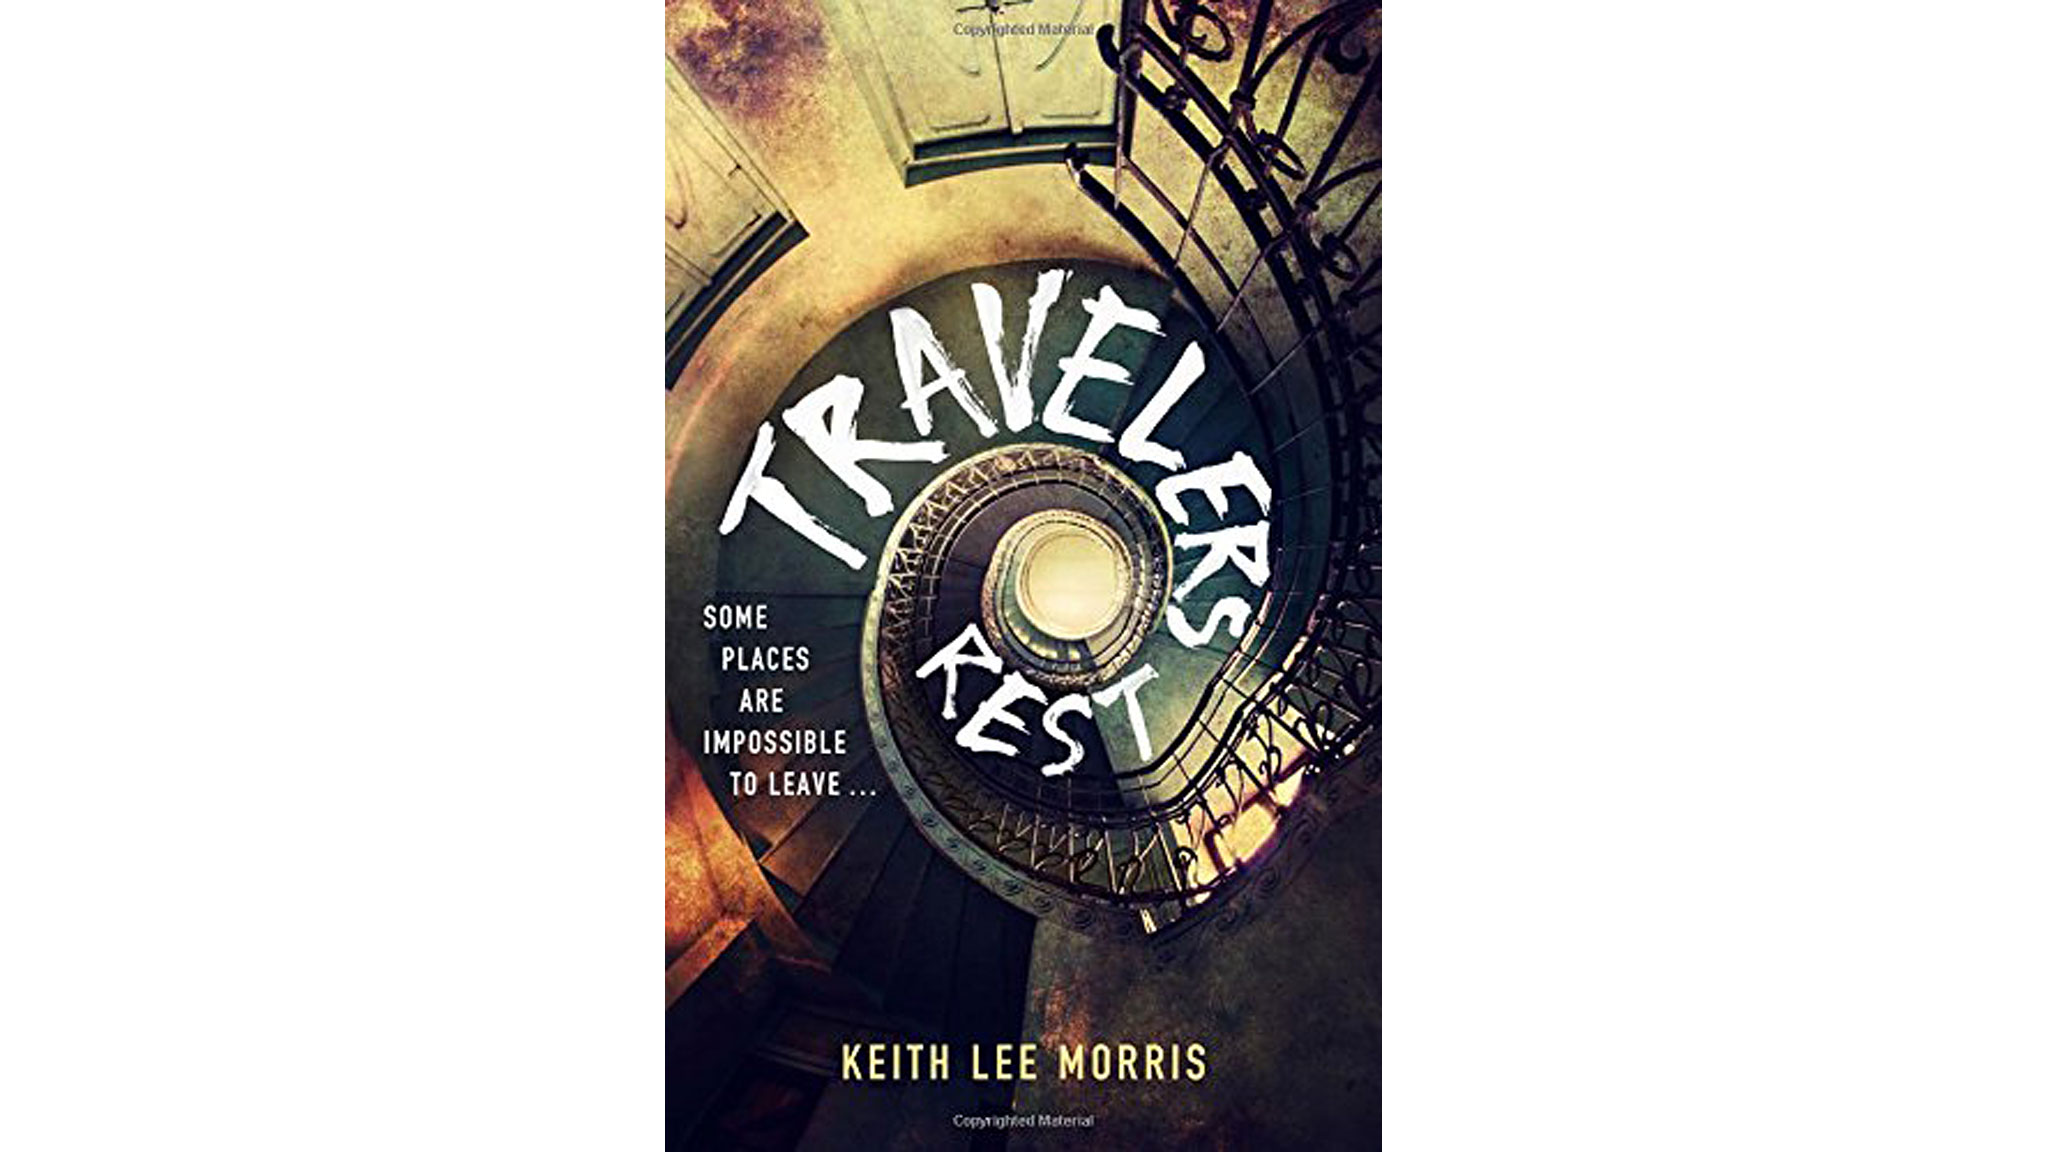 Travelers Rest', by Keith Lee Morris | Financial Times